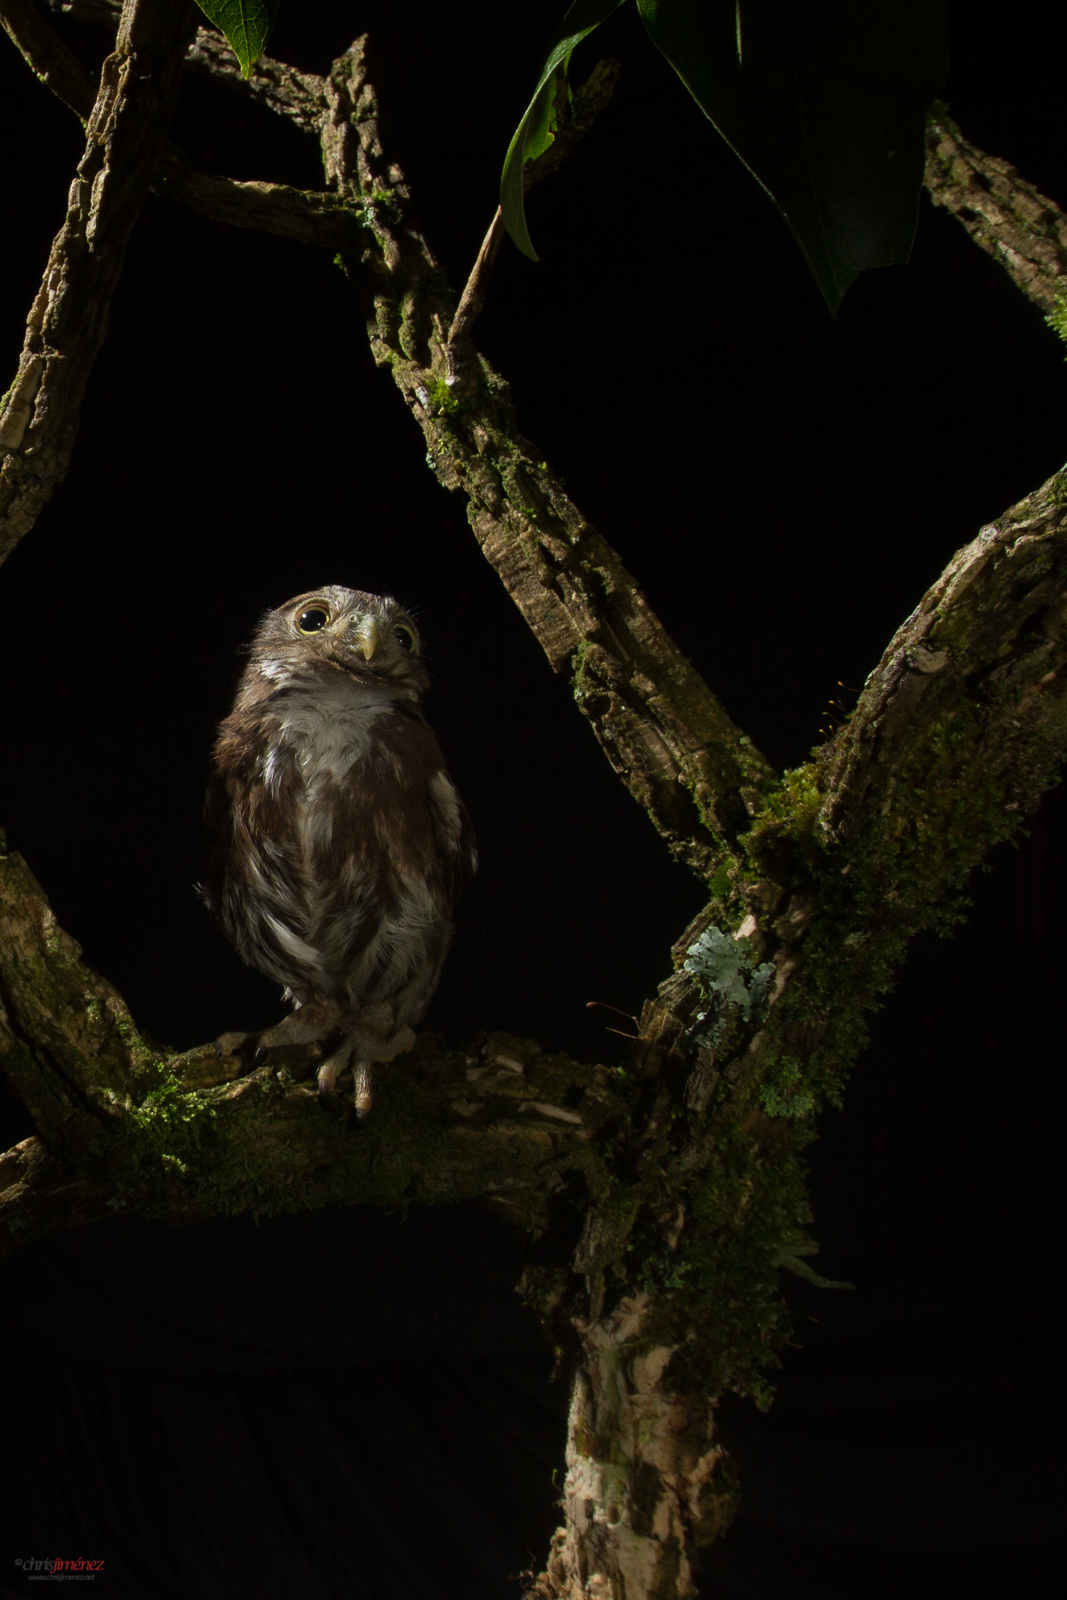 Ferruginous pygmy owl perched on a branch at night at the pacific lowlands of Costa Rica